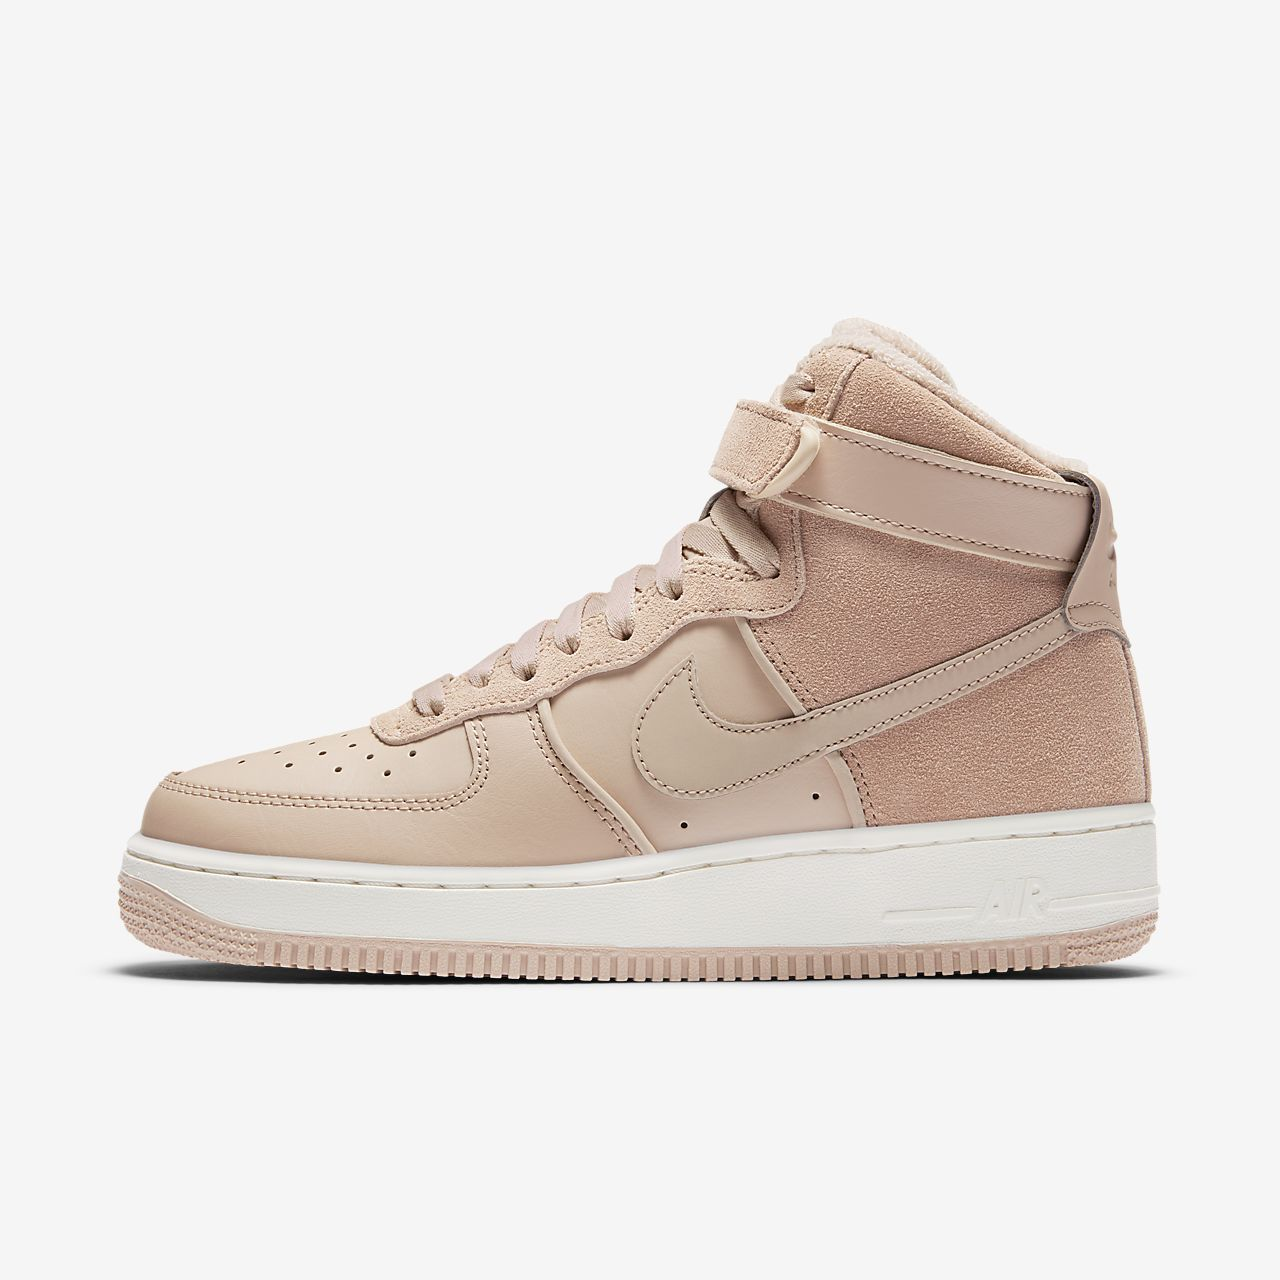 Dámská bota Nike Air Force 1 High Winterized